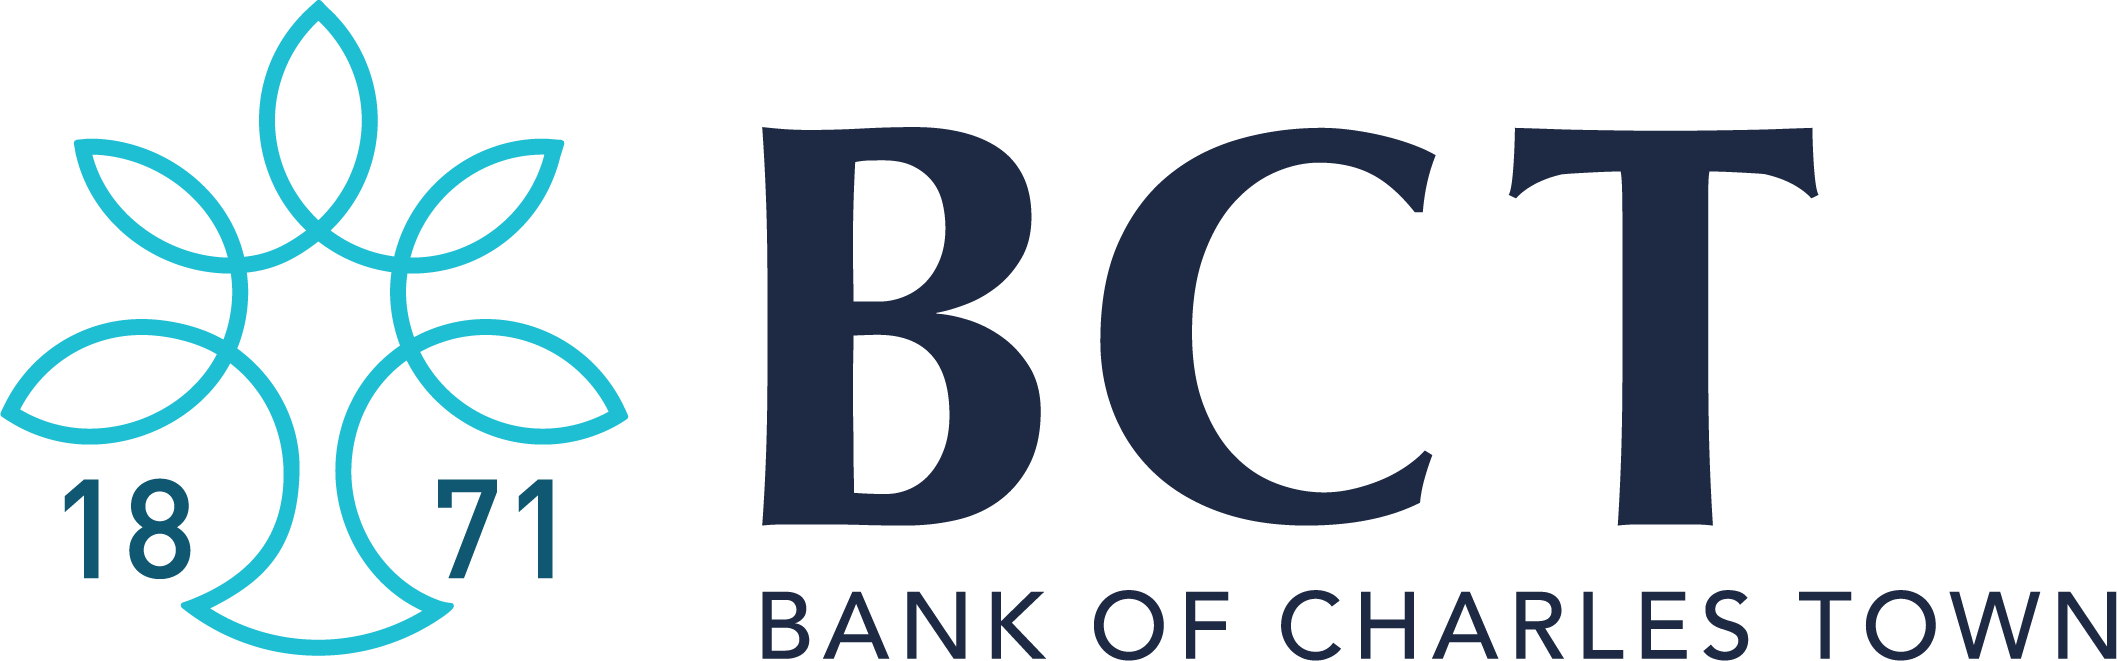 BCT – Bank of Charles Town